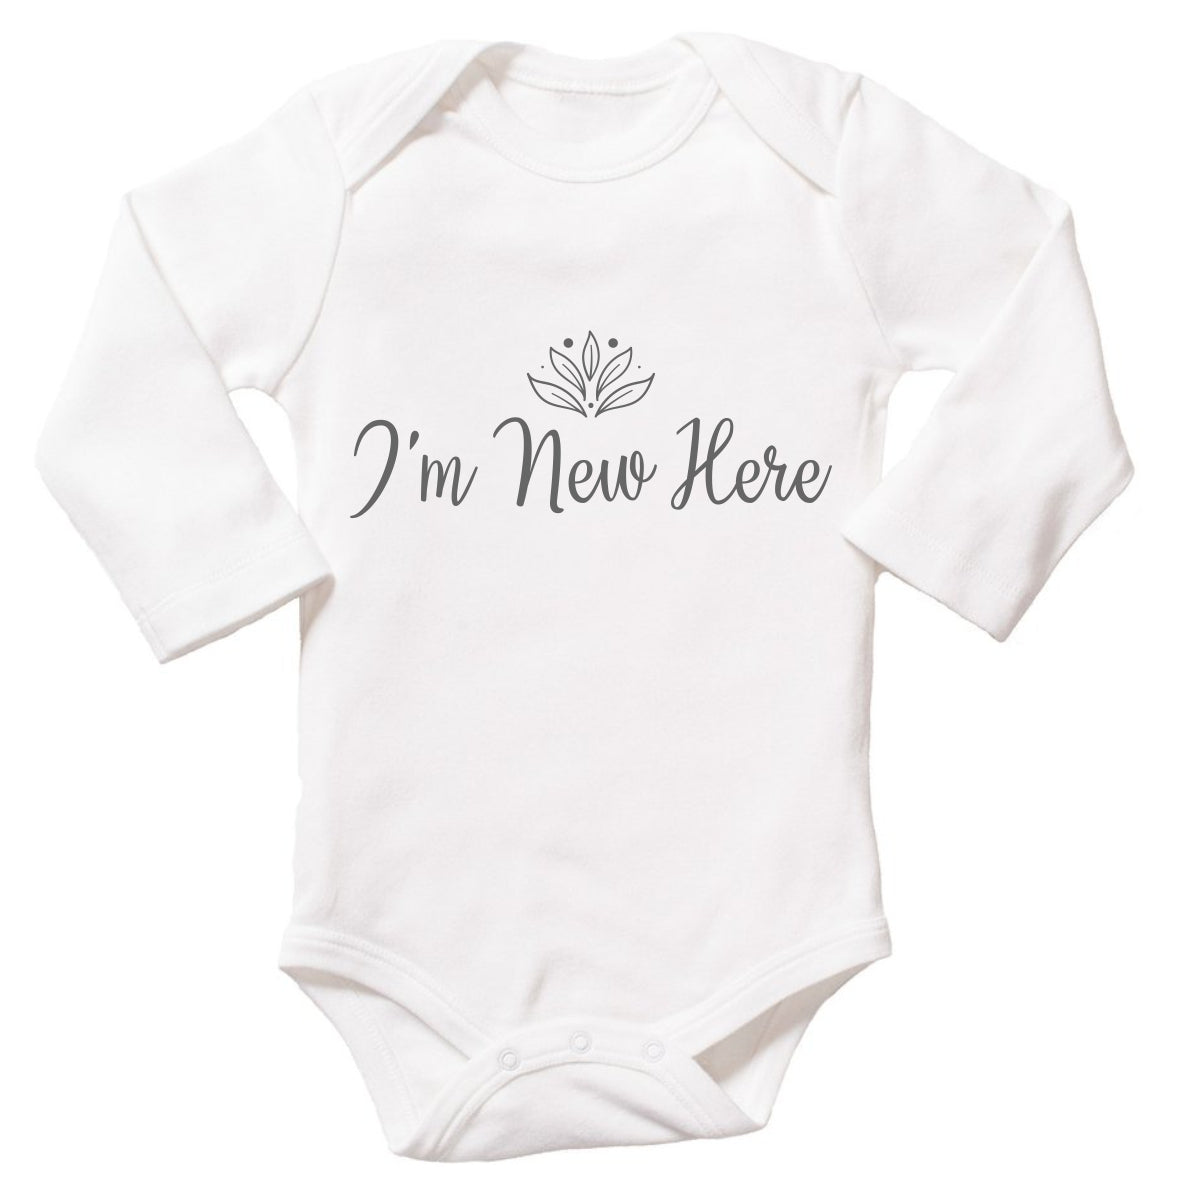 Gift Box Baby Grows (I'm New Here) (4842513203336)